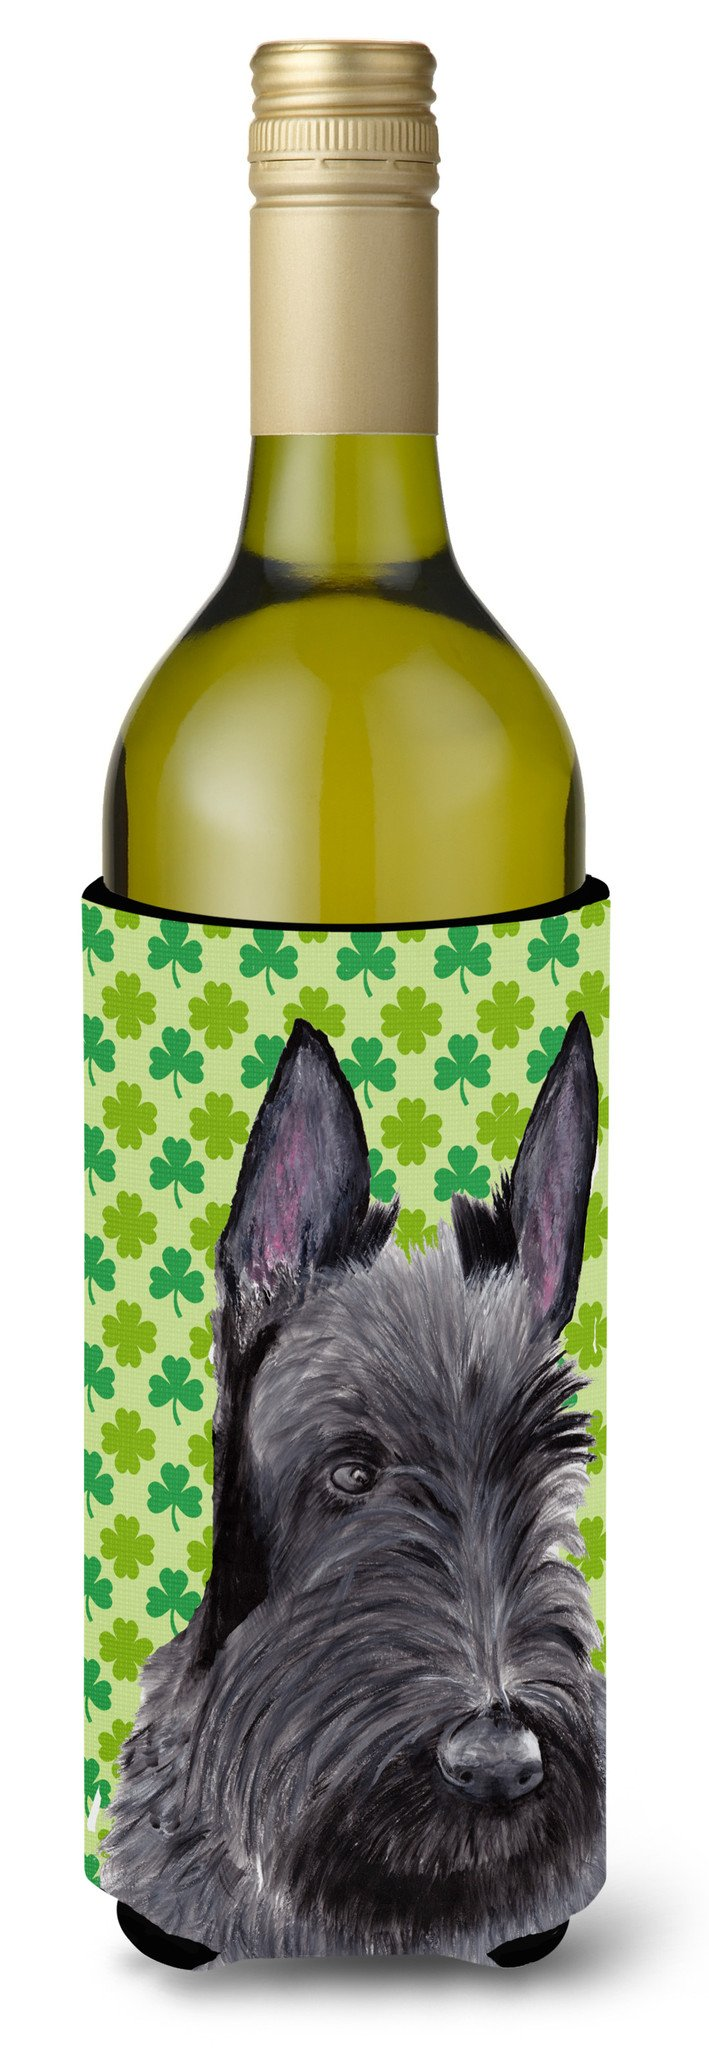 Scottish Terrier St. Patrick's Day Shamrock Portrait Wine Bottle Beverage Insulator Beverage Insulator Hugger by Caroline's Treasures